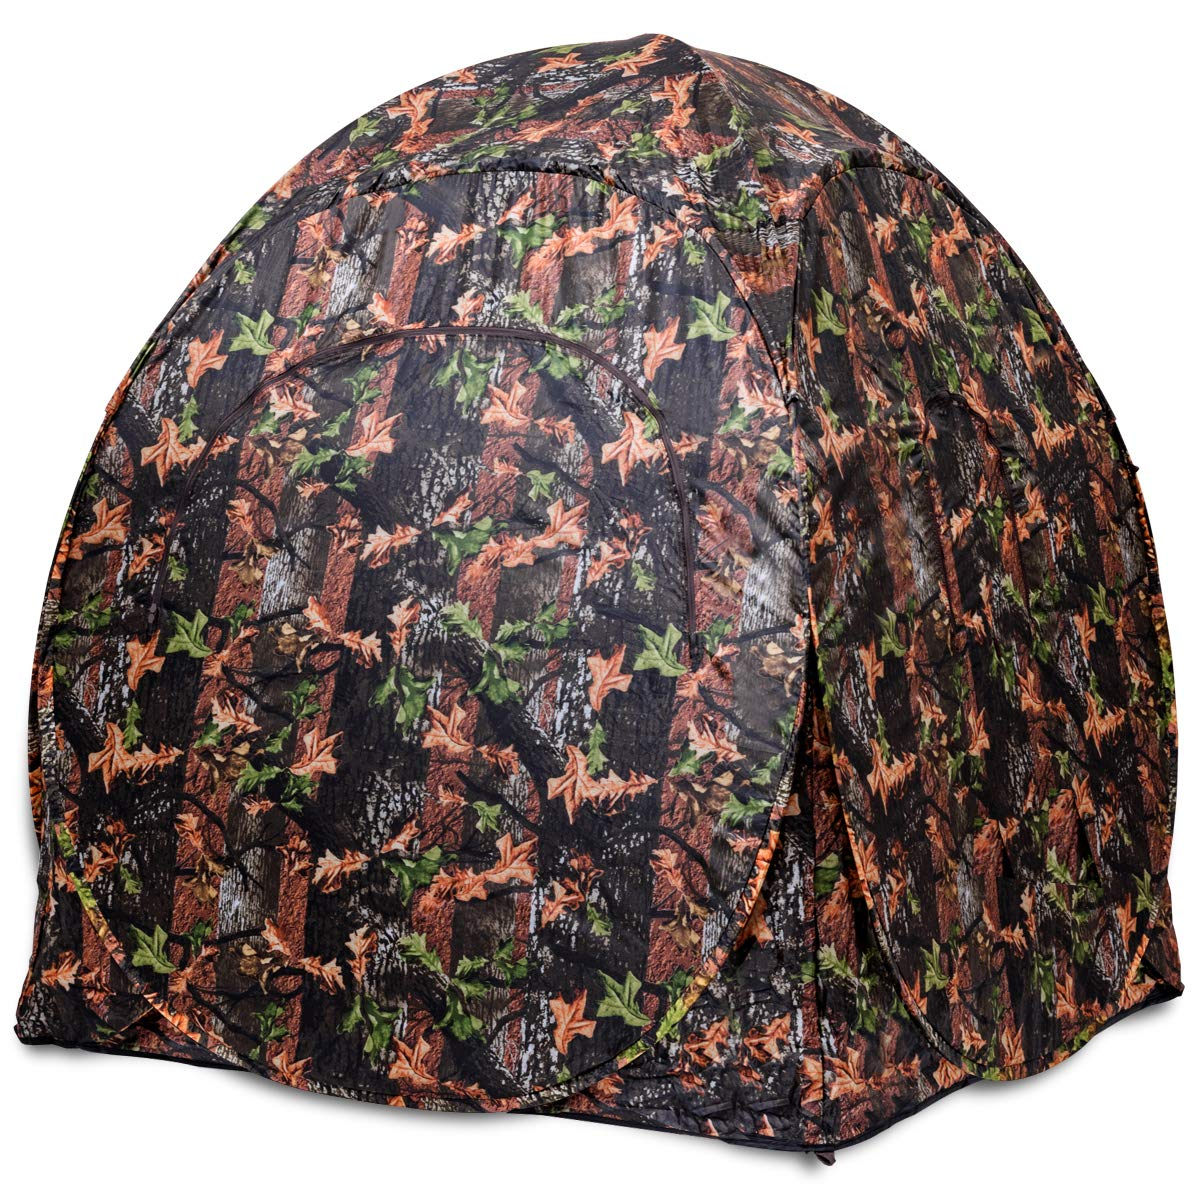 Tangkula Hunting Tent Portable Hunting Blind Pop Up Ground Blind 2-3 People Camo Waterproof with Backpack Hunting Enclosure by Tangkula (Image #7)